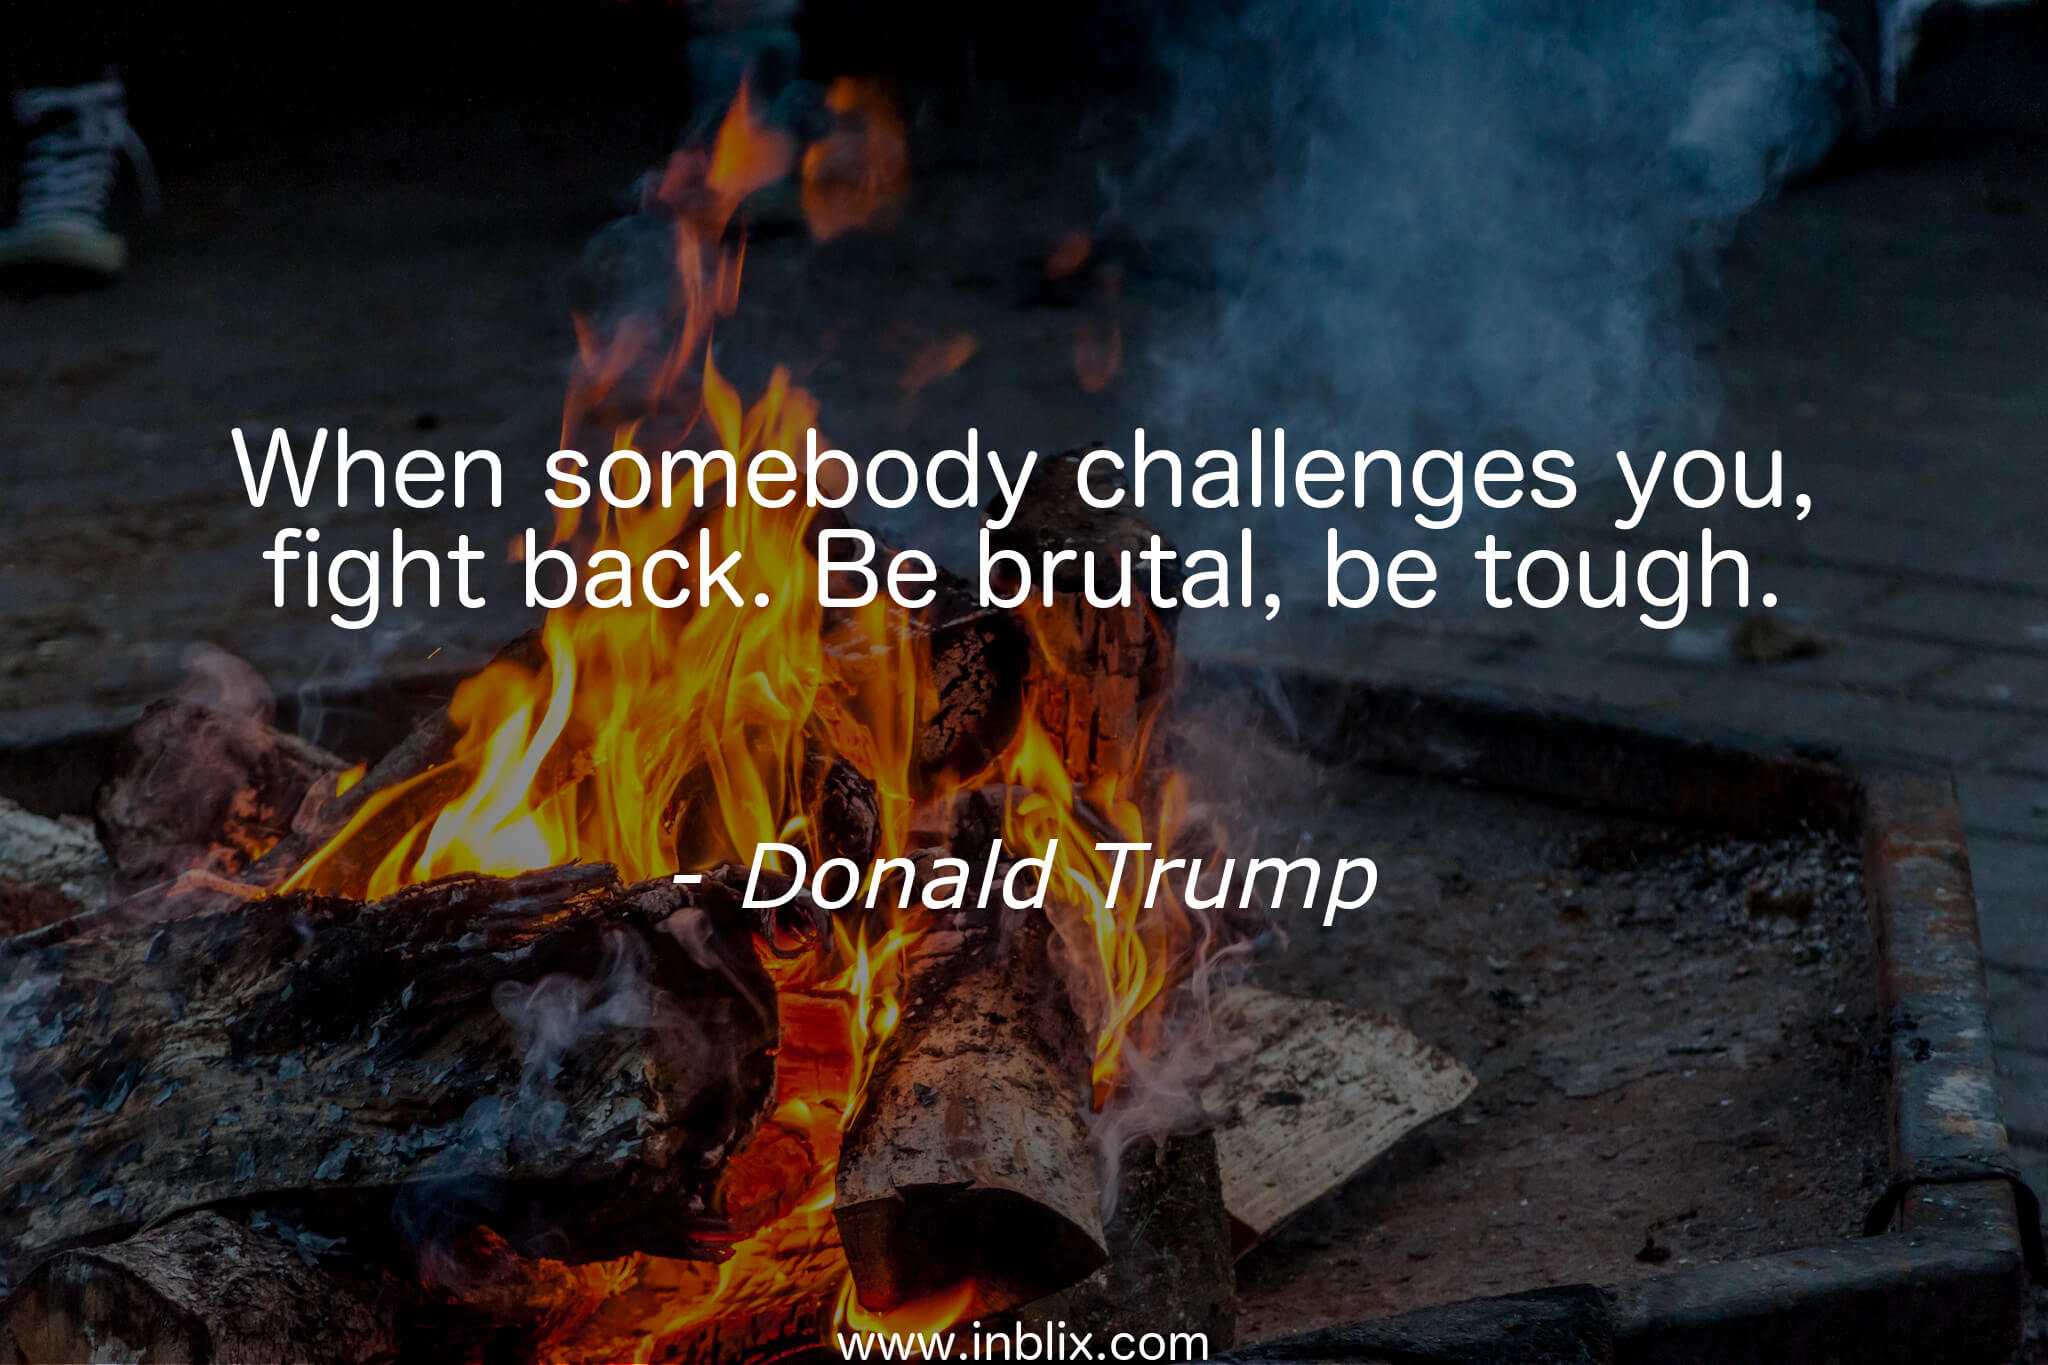 When somebody challenges you, fight back. Be brutal, be tough.